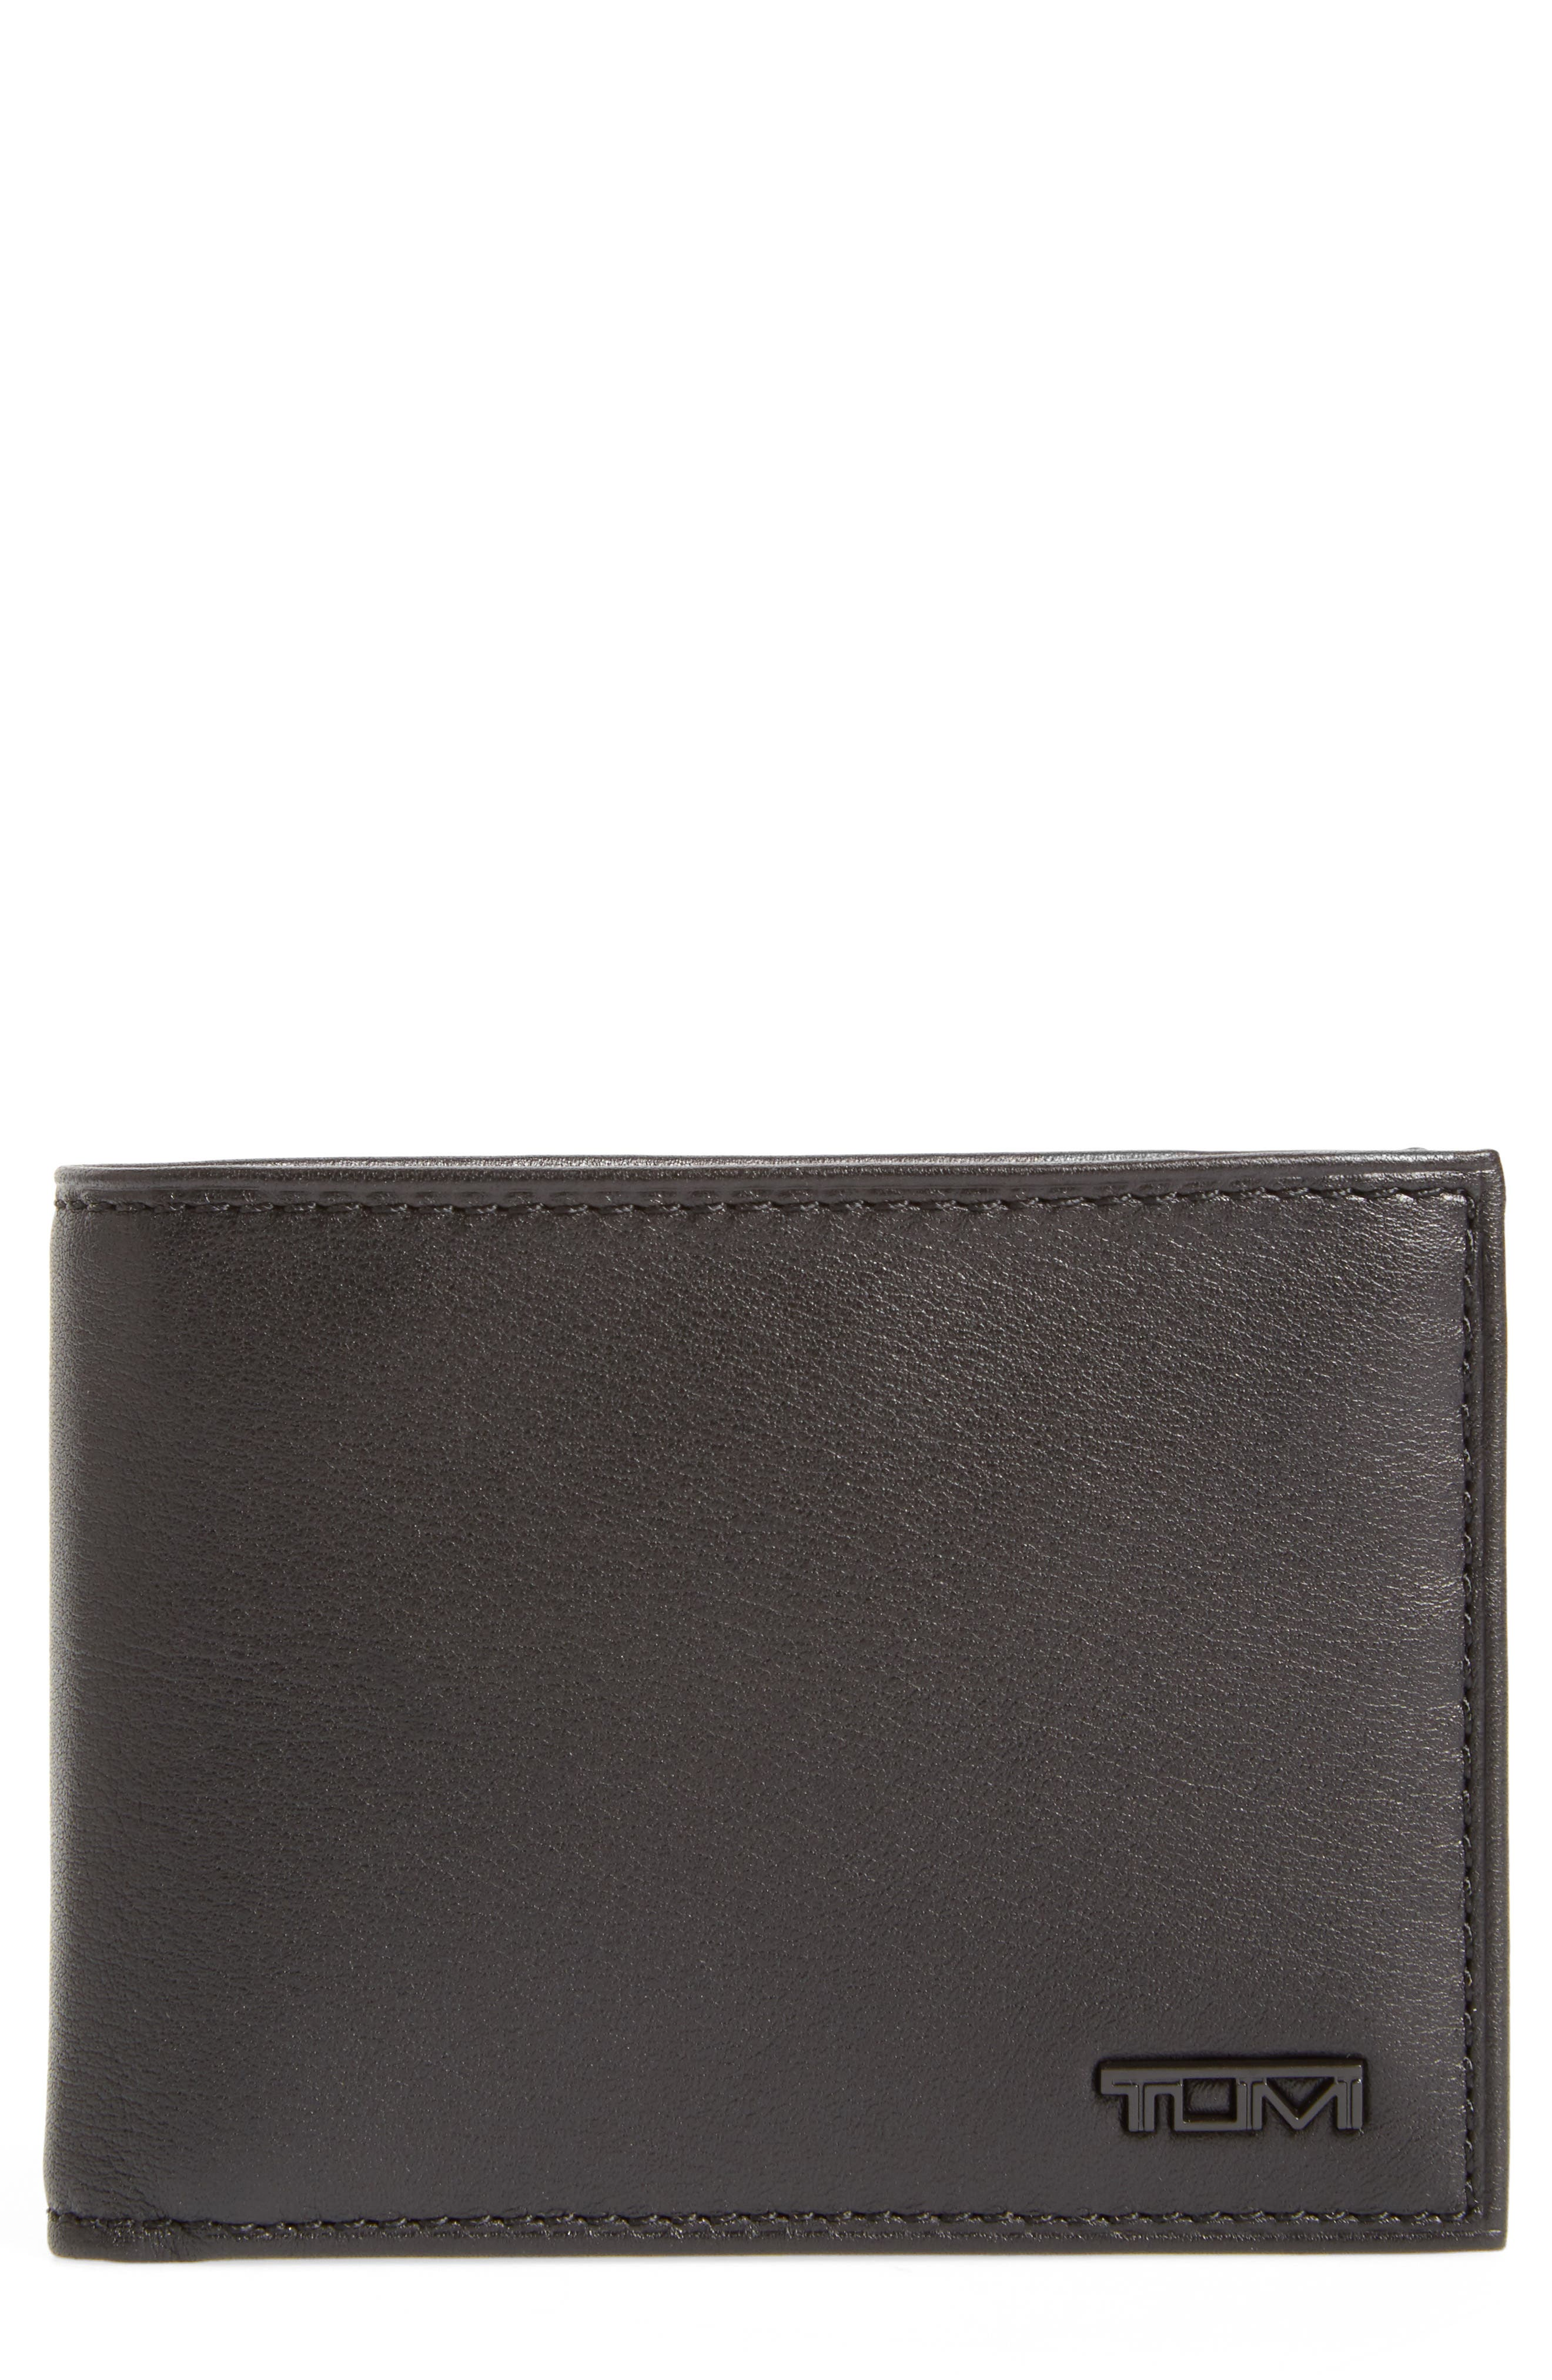 TUMI, Delta Double ID Lock<sup>™</sup> Shielded Leather Wallet, Main thumbnail 1, color, BLACK